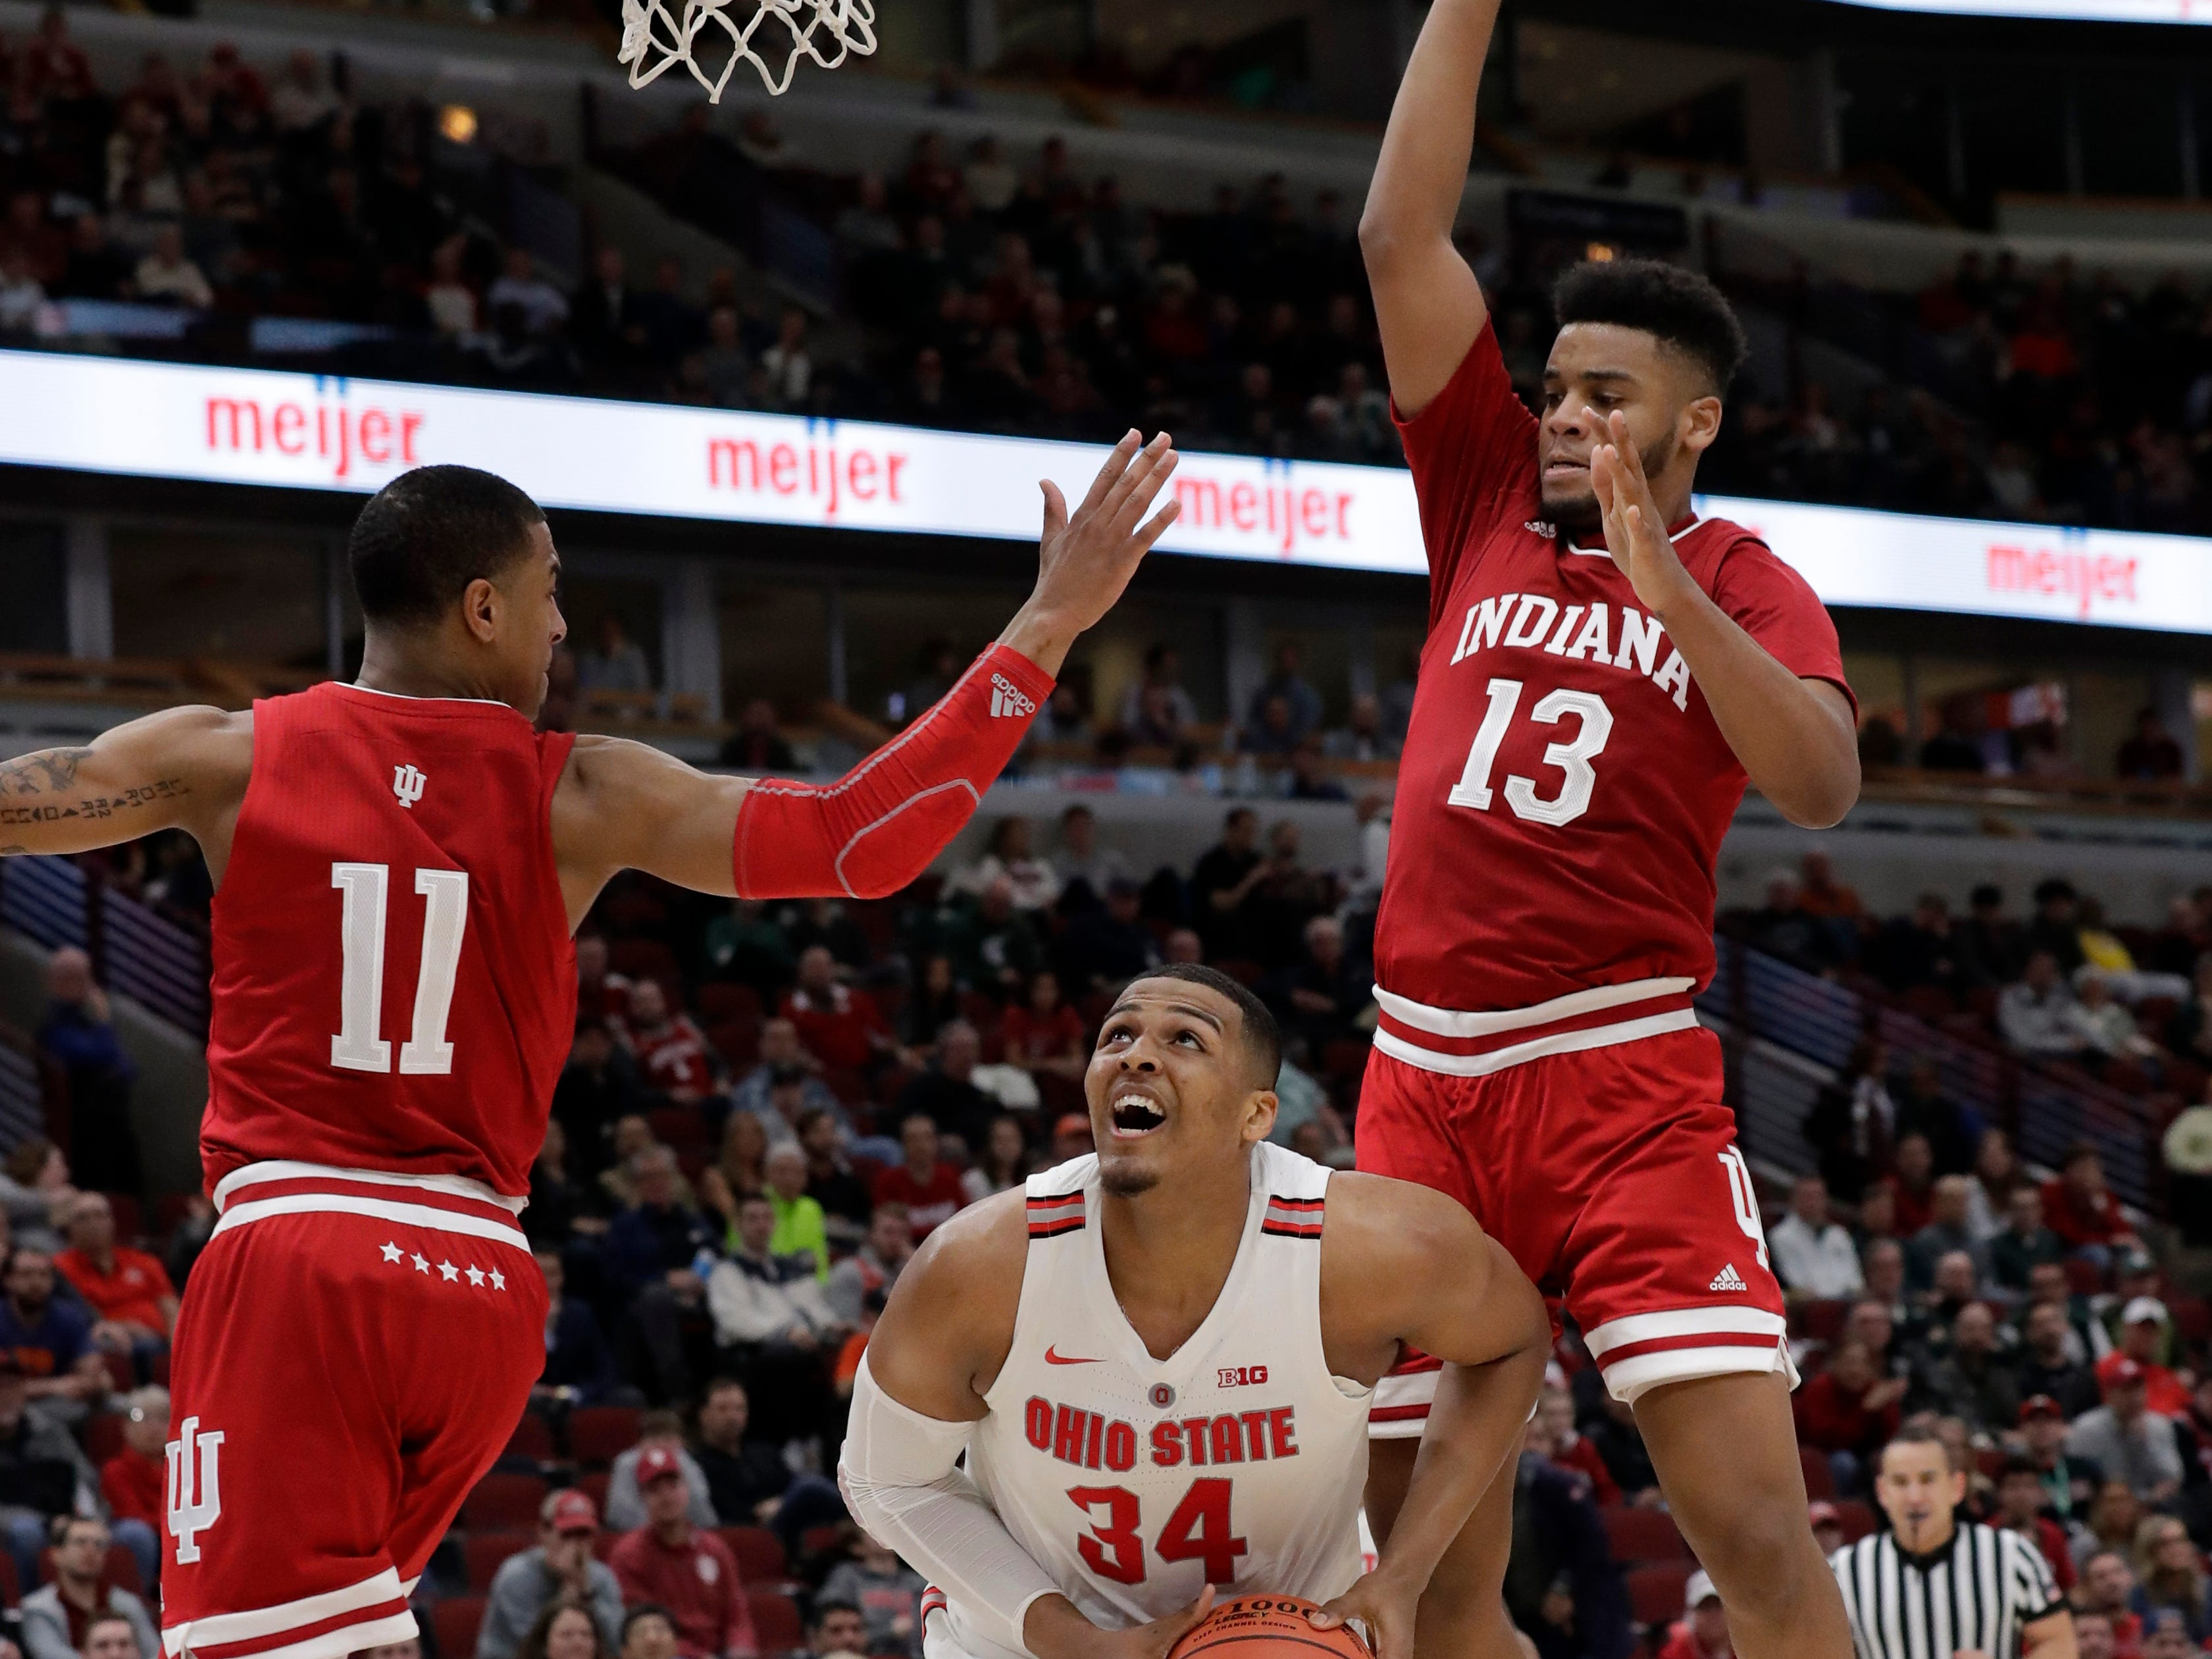 Ohio State's Kaleb Wesson (34) drives against Indiana's Devonte Green (11) and Juwan Morgan (13) during the second half of an NCAA college basketball game in the second round of the Big Ten Conference tournament, Thursday, March 14, 2019, in Chicago. (AP Photo/Nam Y. Huh)